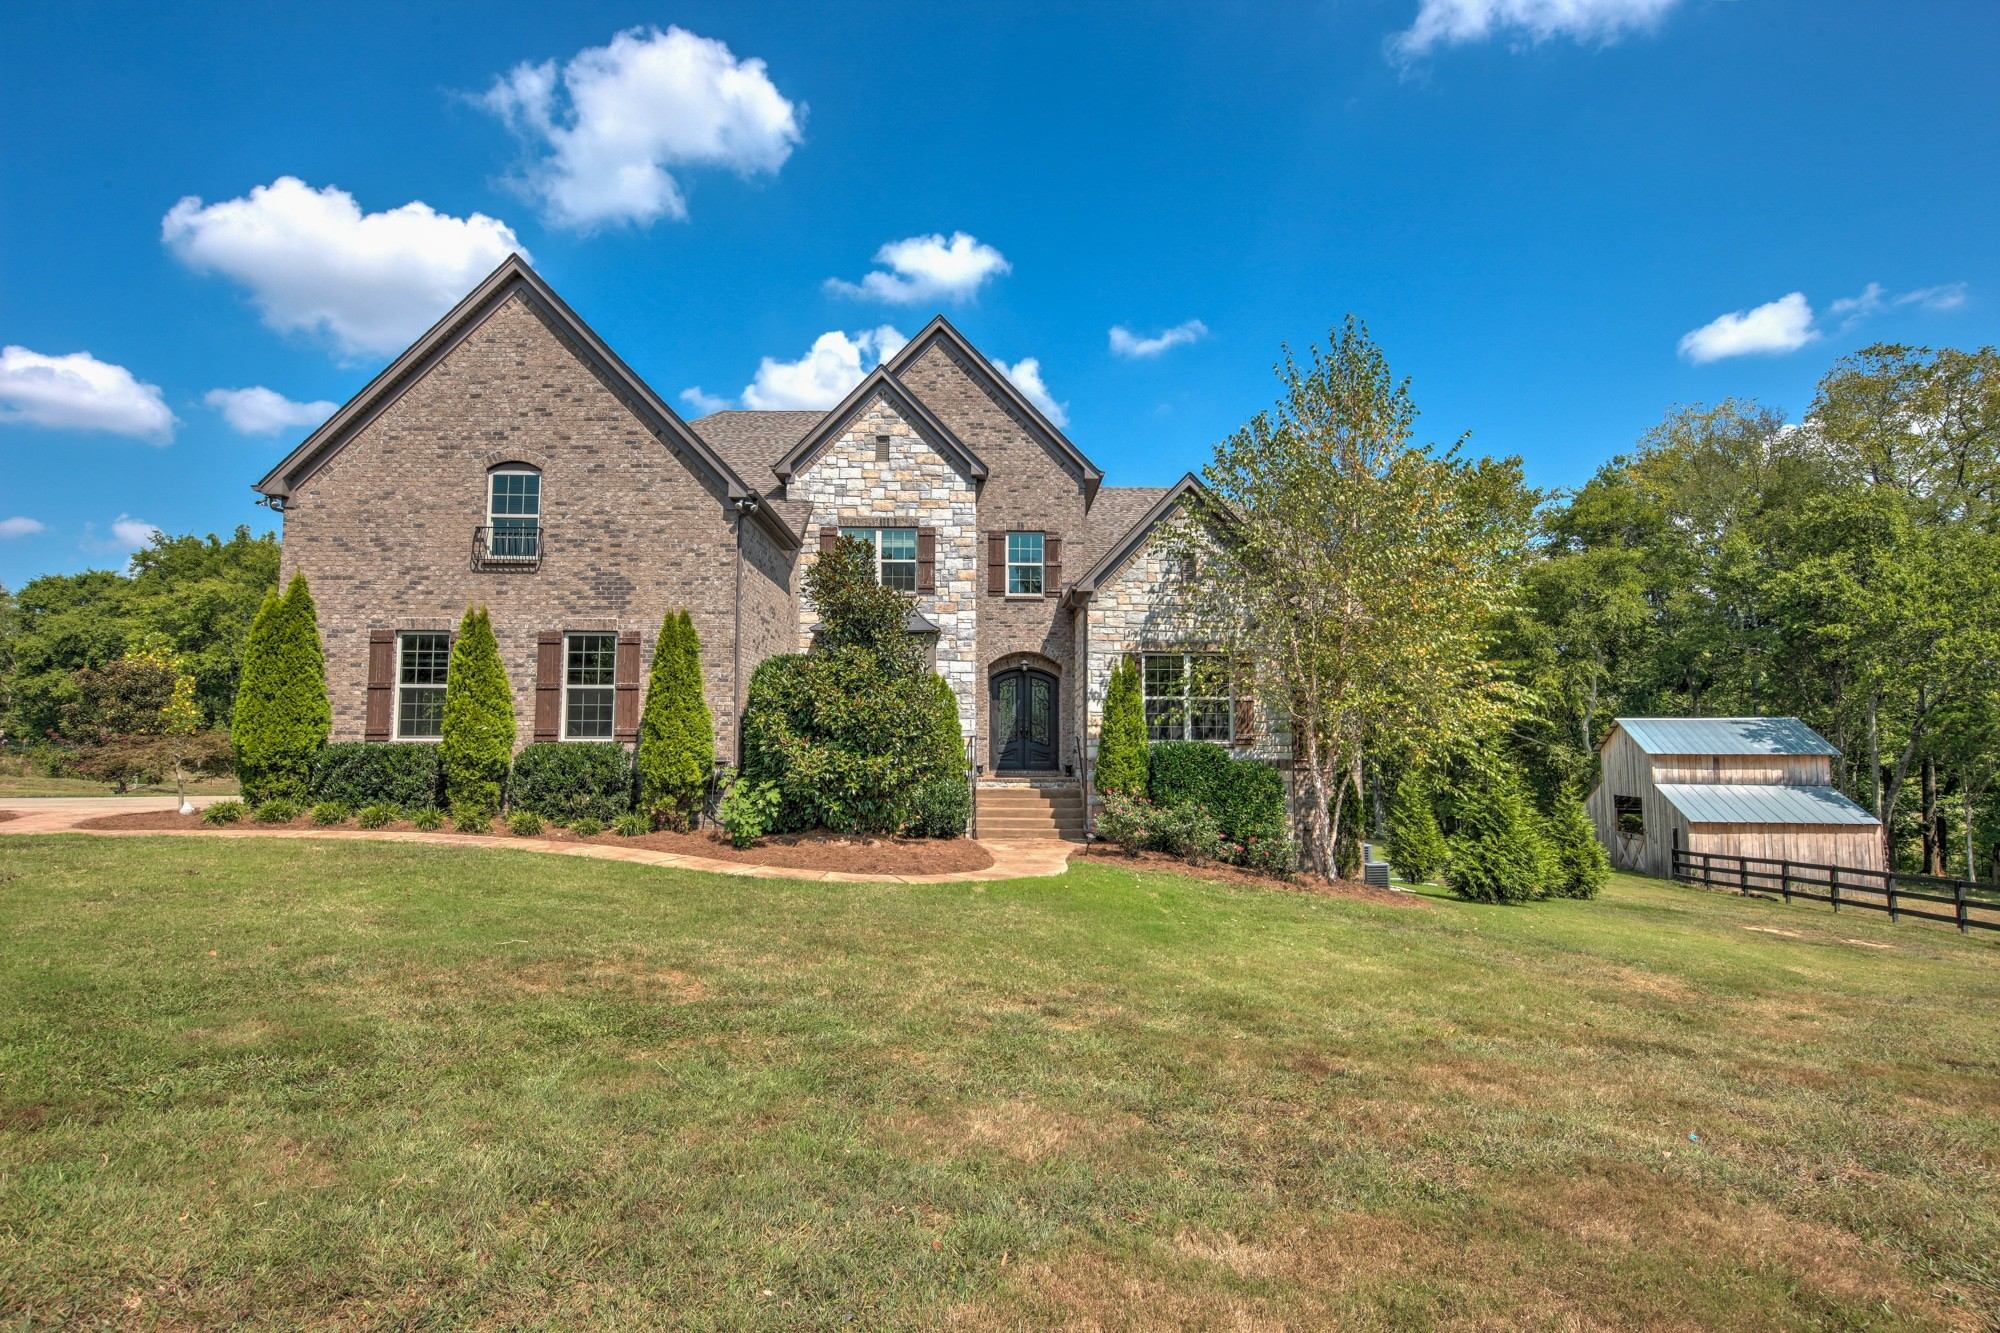 4630 Bethesda Rd, Thompsons Station, TN 37179 - Thompsons Station, TN real estate listing